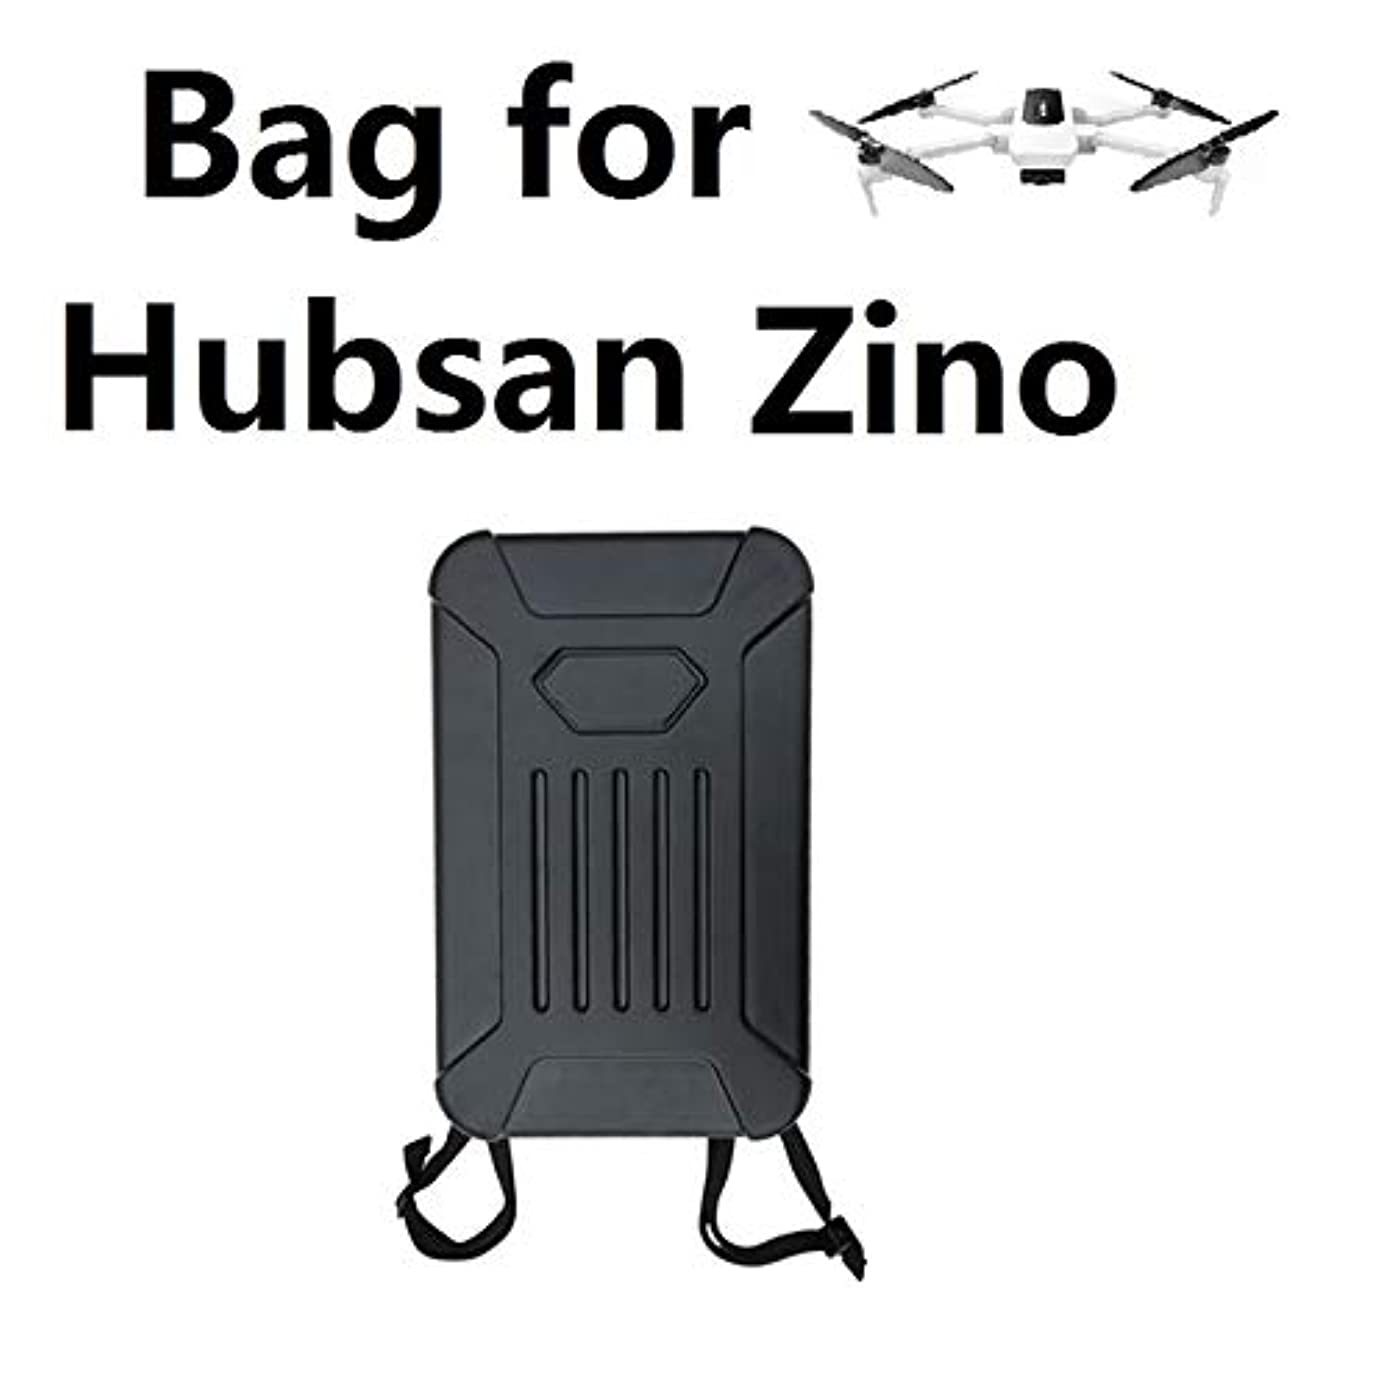 Faironly Zino Shoulder Bag Hard Shell Backpack Storage Bag for Hubsan X4 Zino H117S as Shown